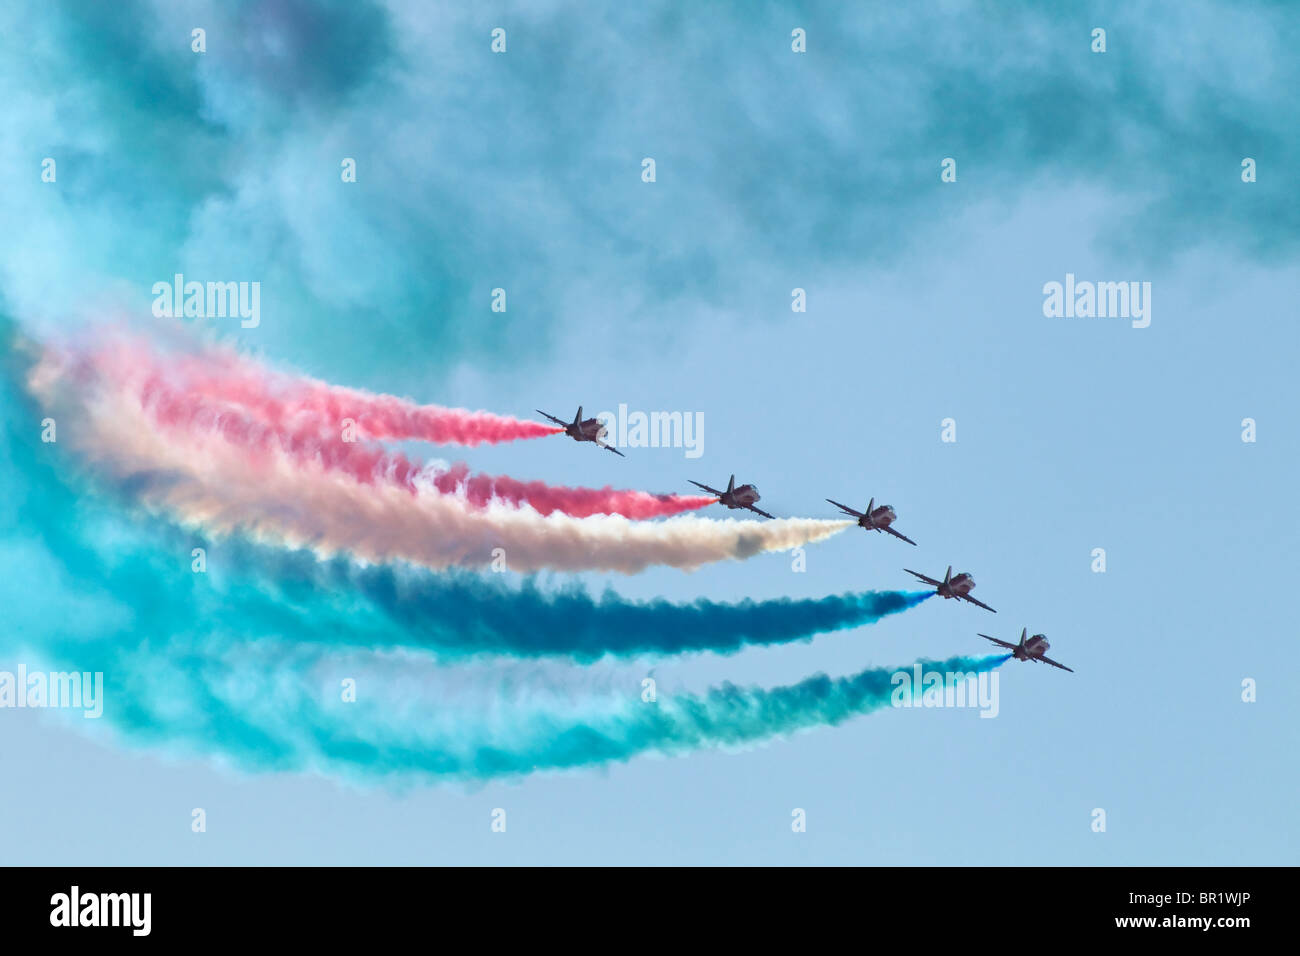 Display smoke from the RAF's Red Arrows formation aerobatic team - Stock Image